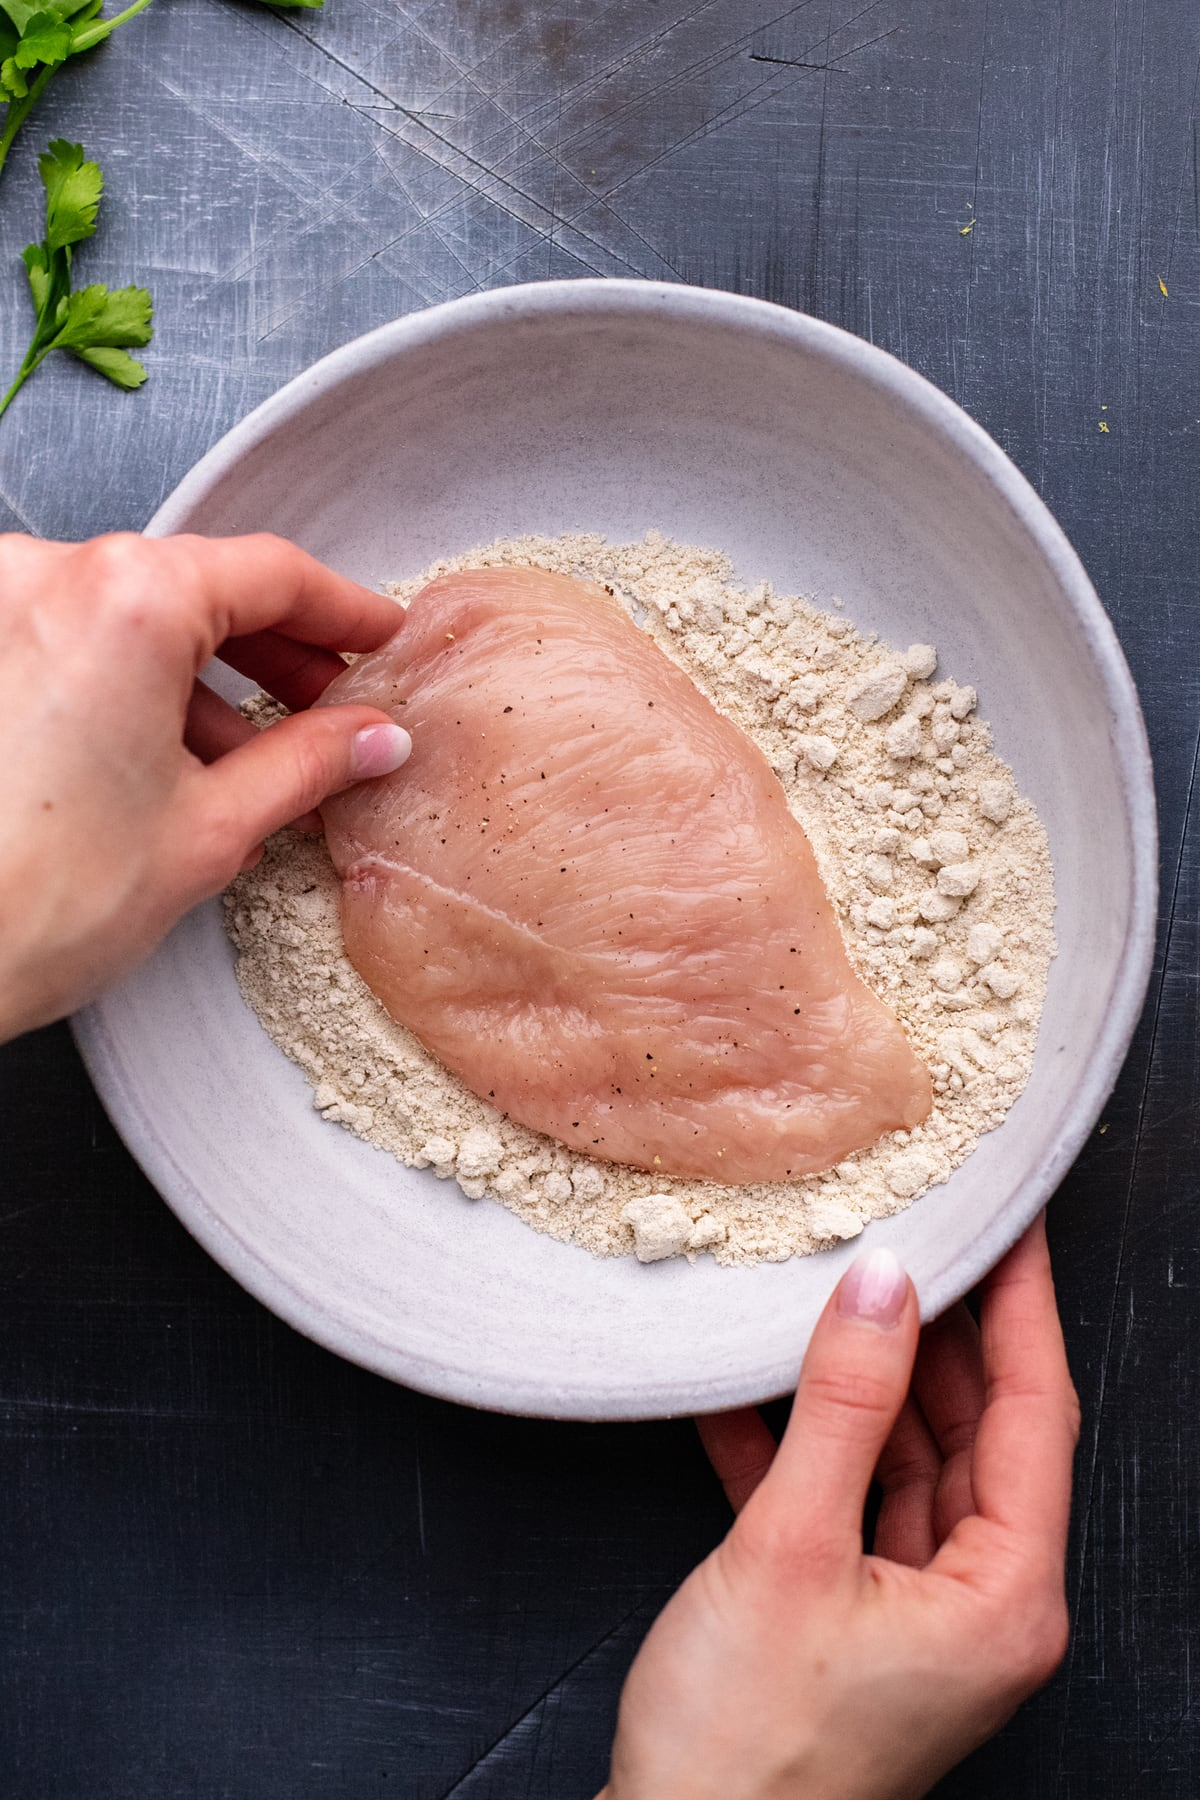 hand dipping chicken breast into white bowl of flour on gray background.